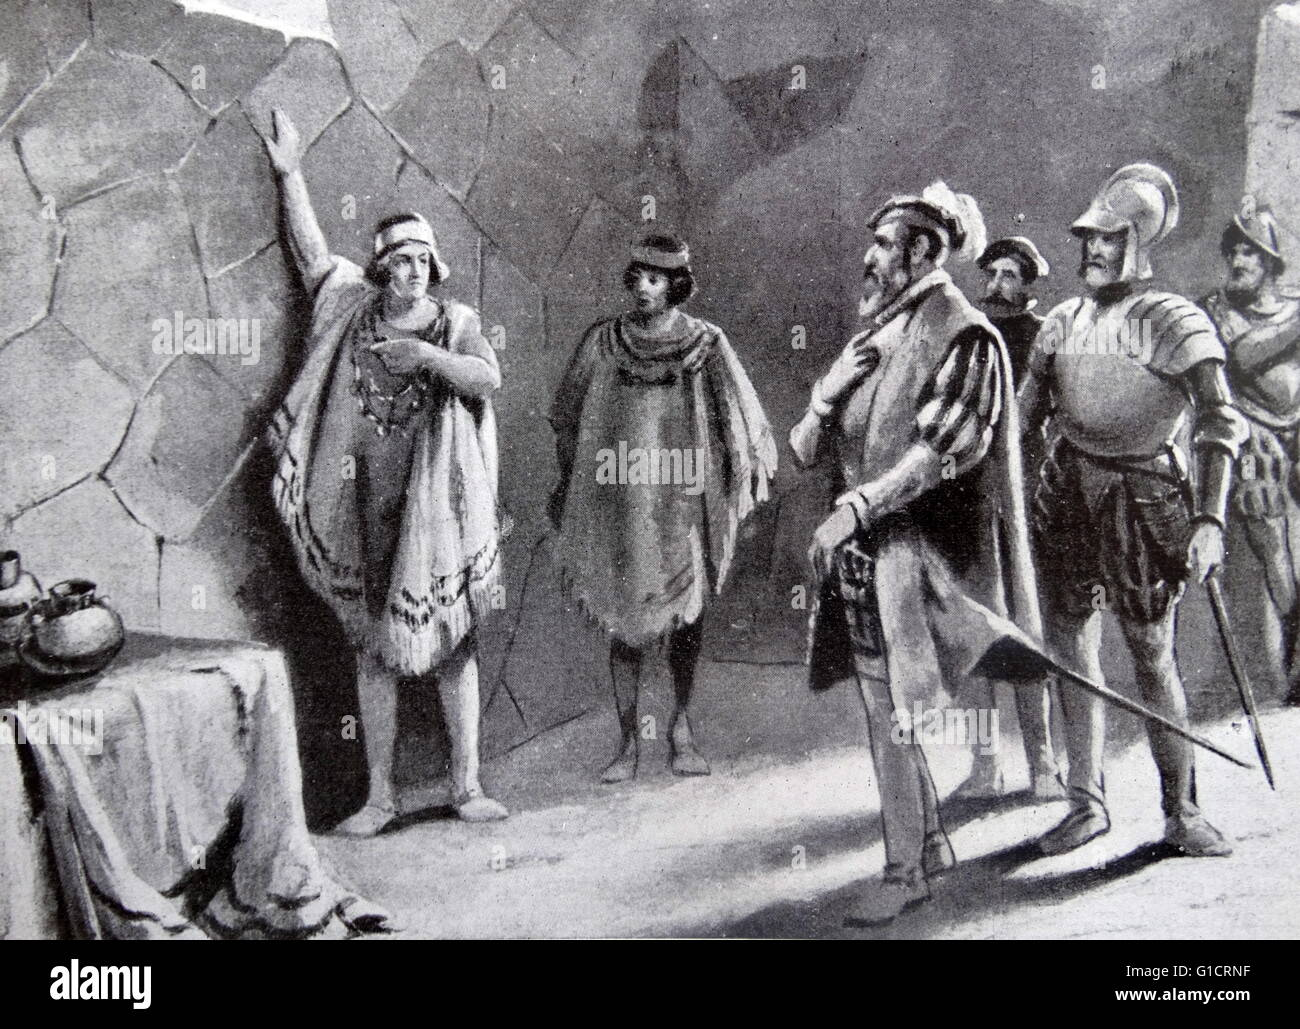 the arrest of atahualpa last inca ruler by francisco